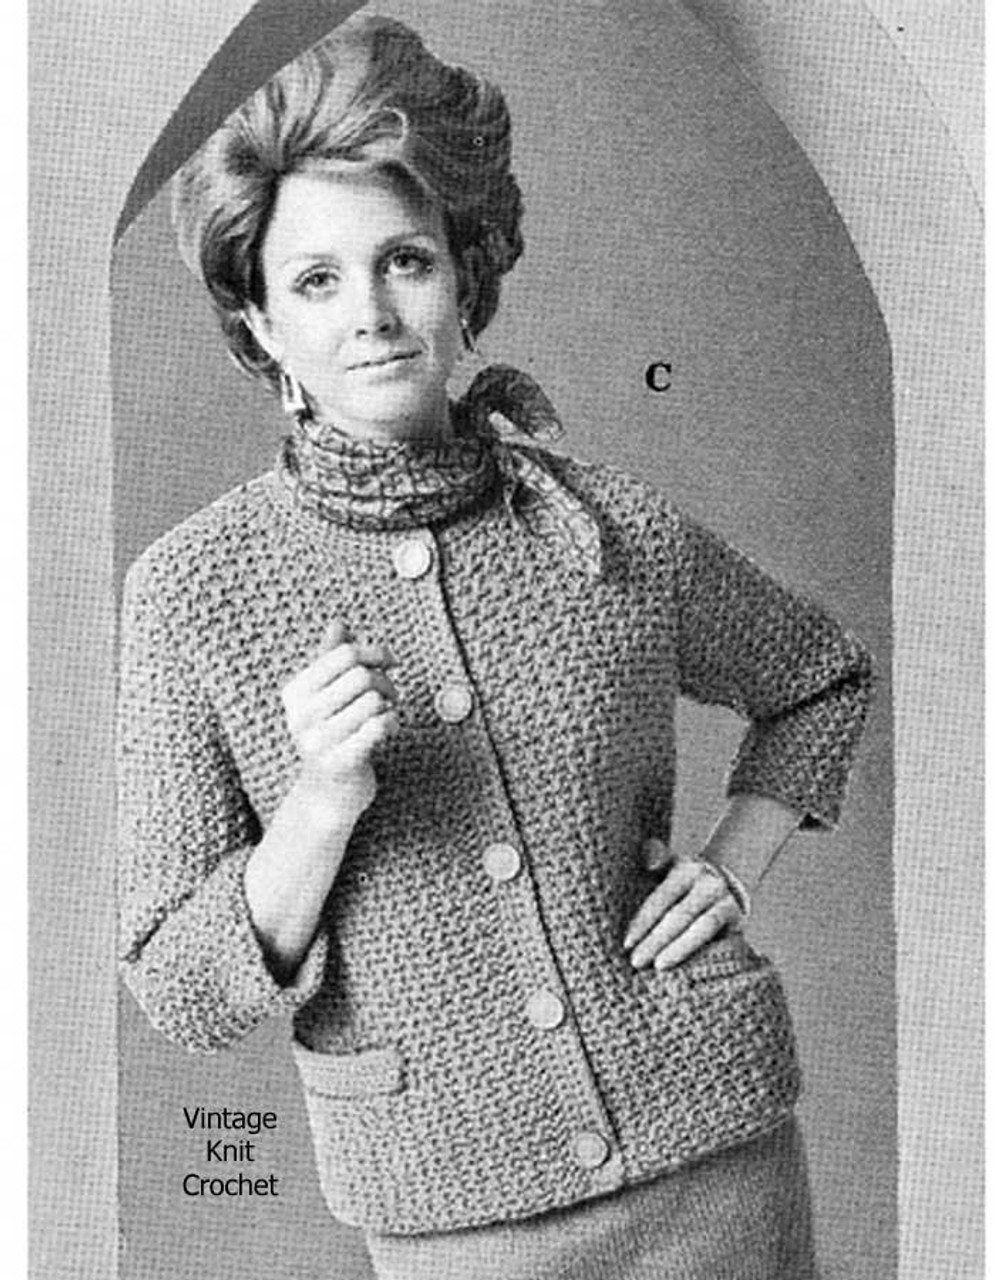 Vintage Knitted Cardigan Pattern, Skirt Suit 1950s